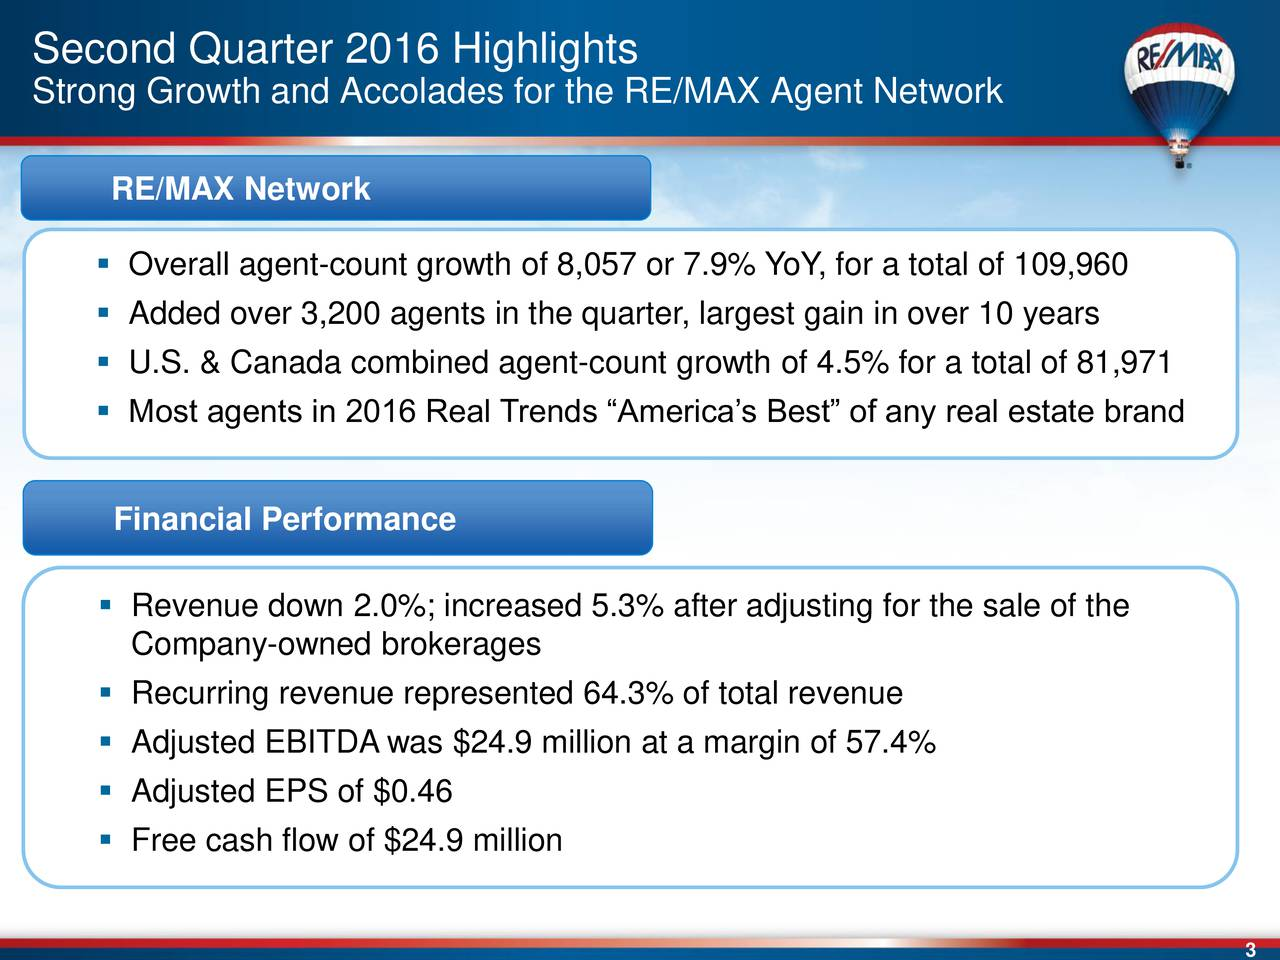 Strong Growth and Accolades for the RE/MAX Agent Network RE/MAX Network Overall agent-count growth of 8,057 or 7.9% YoY, for a total of 109,960 Added over 3,200 agents in the quarter, largest gain in over 10 years U.S. & Canada combined agent-count growth of 4.5% for a total of 81,971 Most agents in 2016 Real Trends Americas Best of any real estate brand Financial Performance Revenue down 2.0%; increased 5.3% after adjusting for the sale of the Company-owned brokerages Recurring revenue represented 64.3% of total revenue Adjusted EBITDA was $24.9 million at a margin of 57.4% Adjusted EPS of $0.46 Free cash flow of $24.9 million